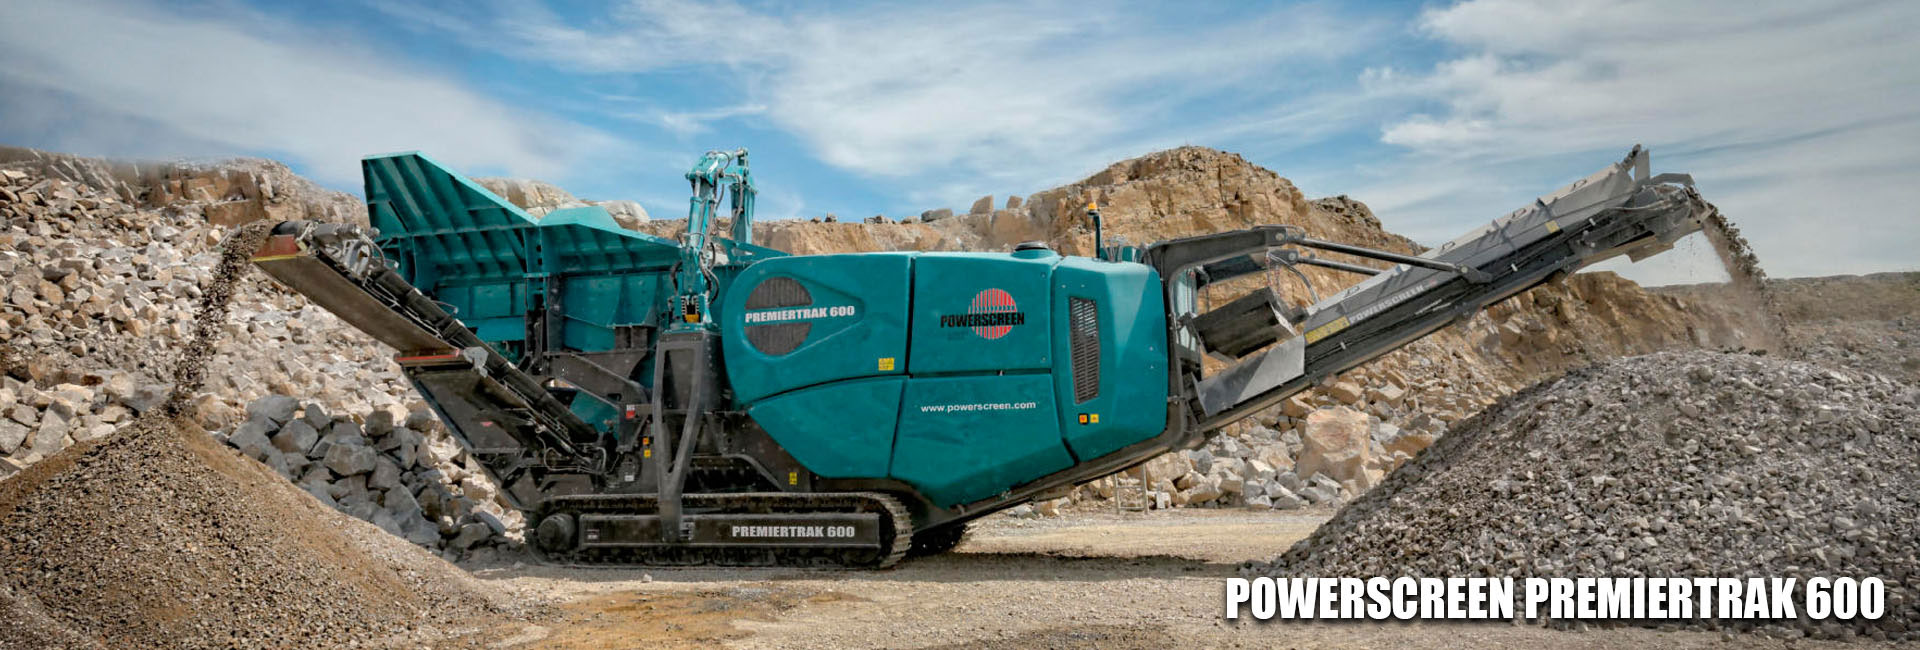 03—POWERSCREEN-PREMIERTRAK-600